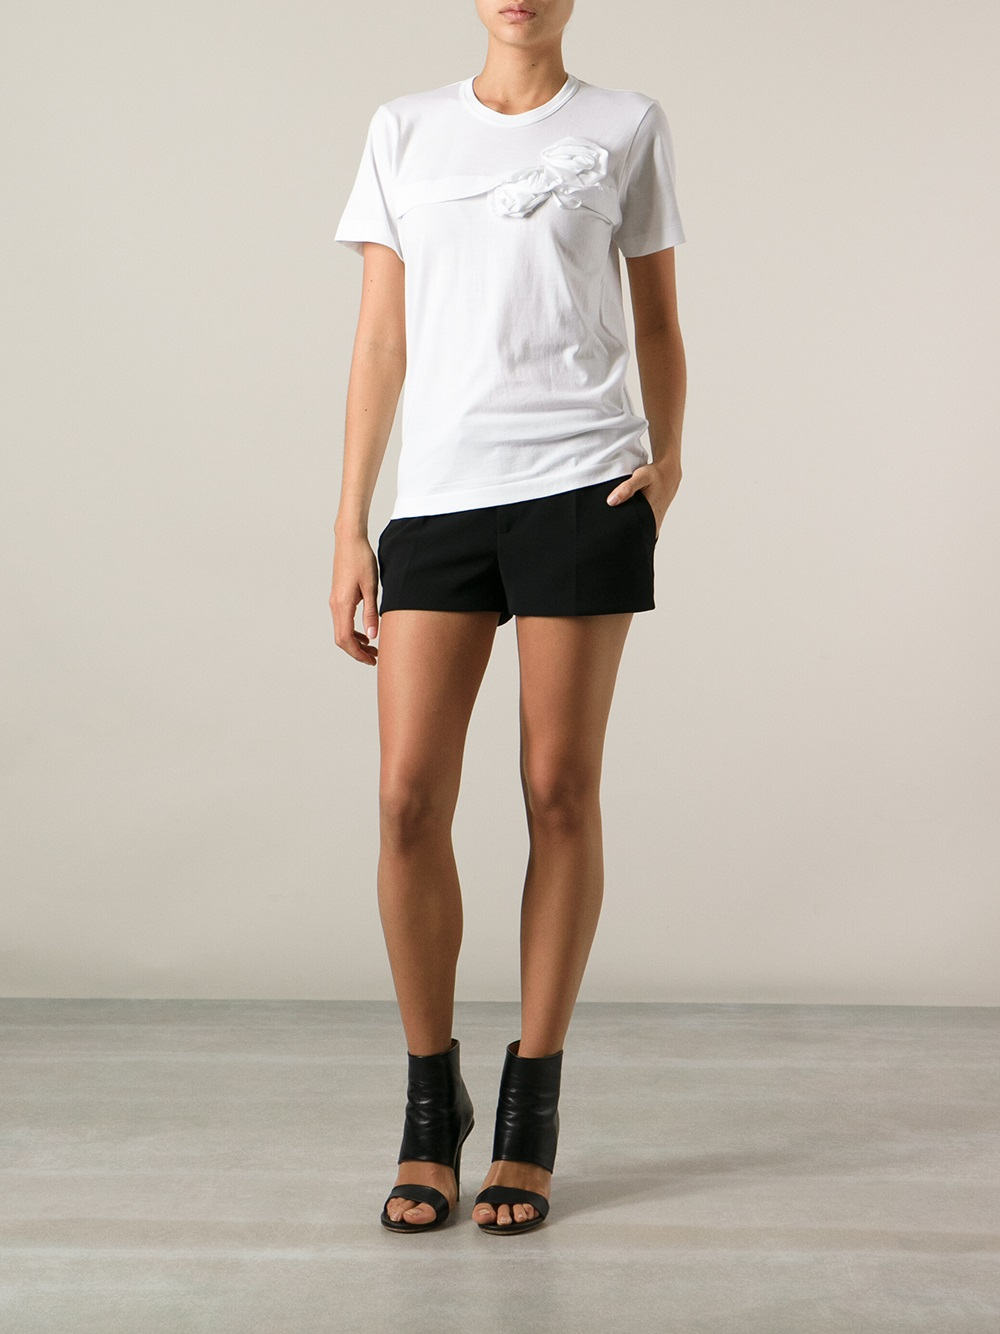 comme des gar ons ruffle detail t shirt in white lyst. Black Bedroom Furniture Sets. Home Design Ideas